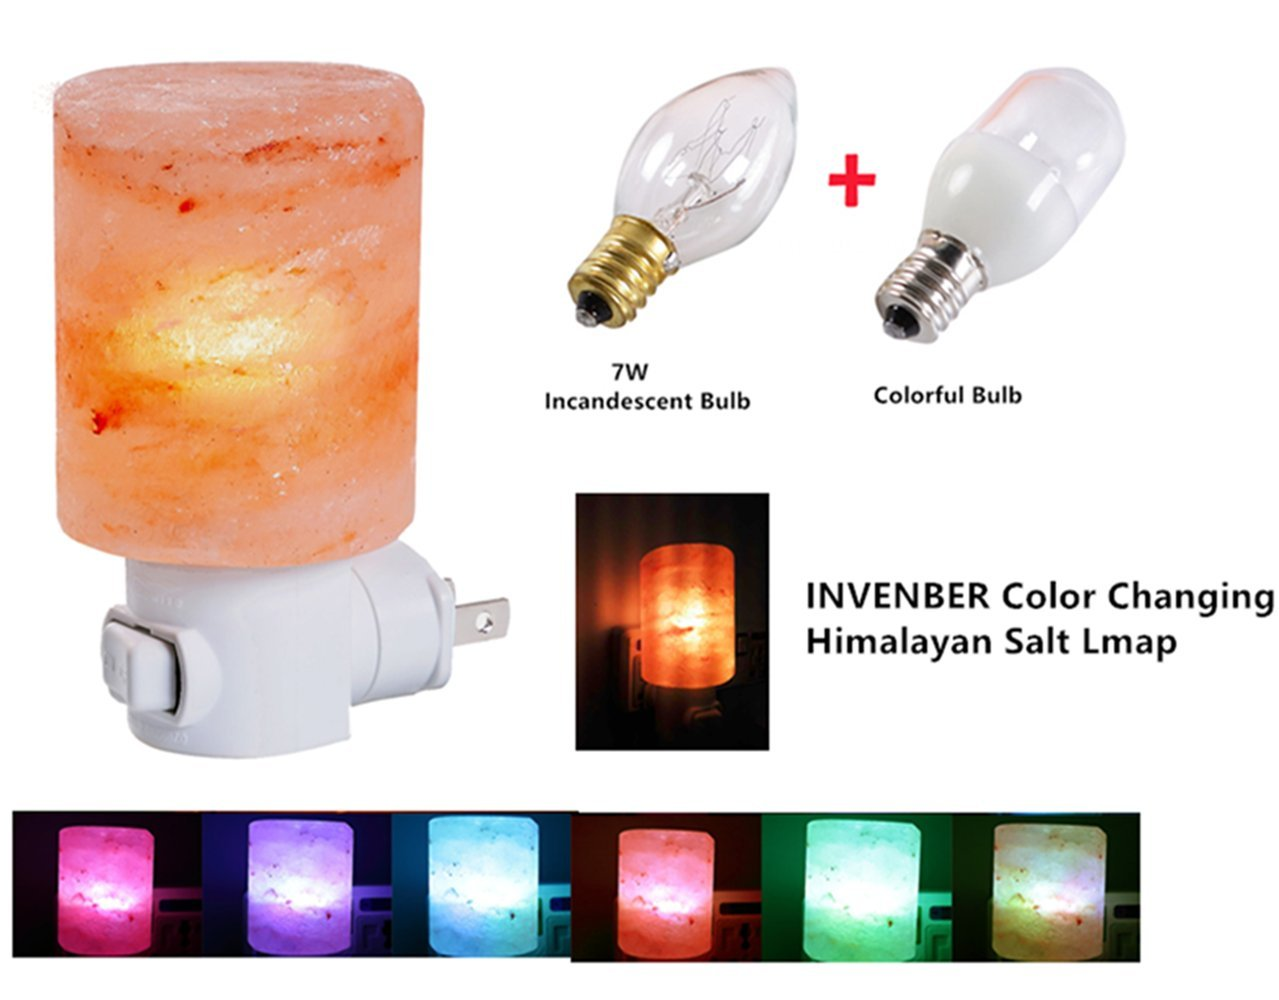 Himalayan Salt Lamps, INVENBER Wall Plug-in Light Mini Hand Carved Decorative Lamp Made of Natural Himalayan Salt Crystals Air Purification Mood Booster and Sleep Promoter (Two Bulbs)